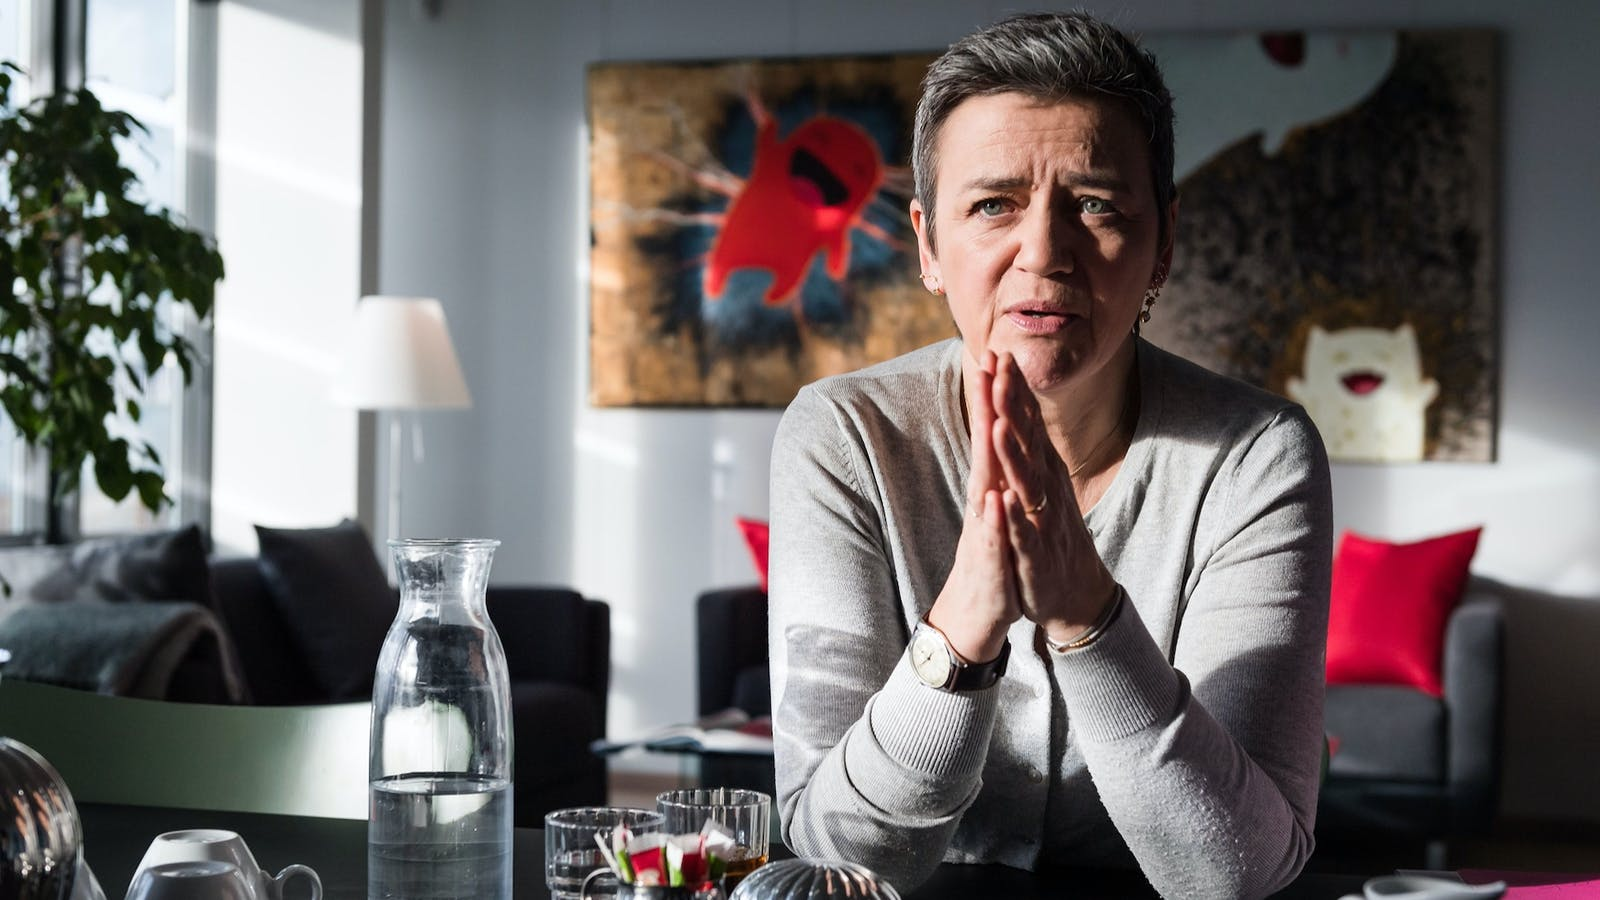 Margrethe Vestager, competition commissioner of the European Commission, in her office in Brussels in February. Photo by Bloomberg